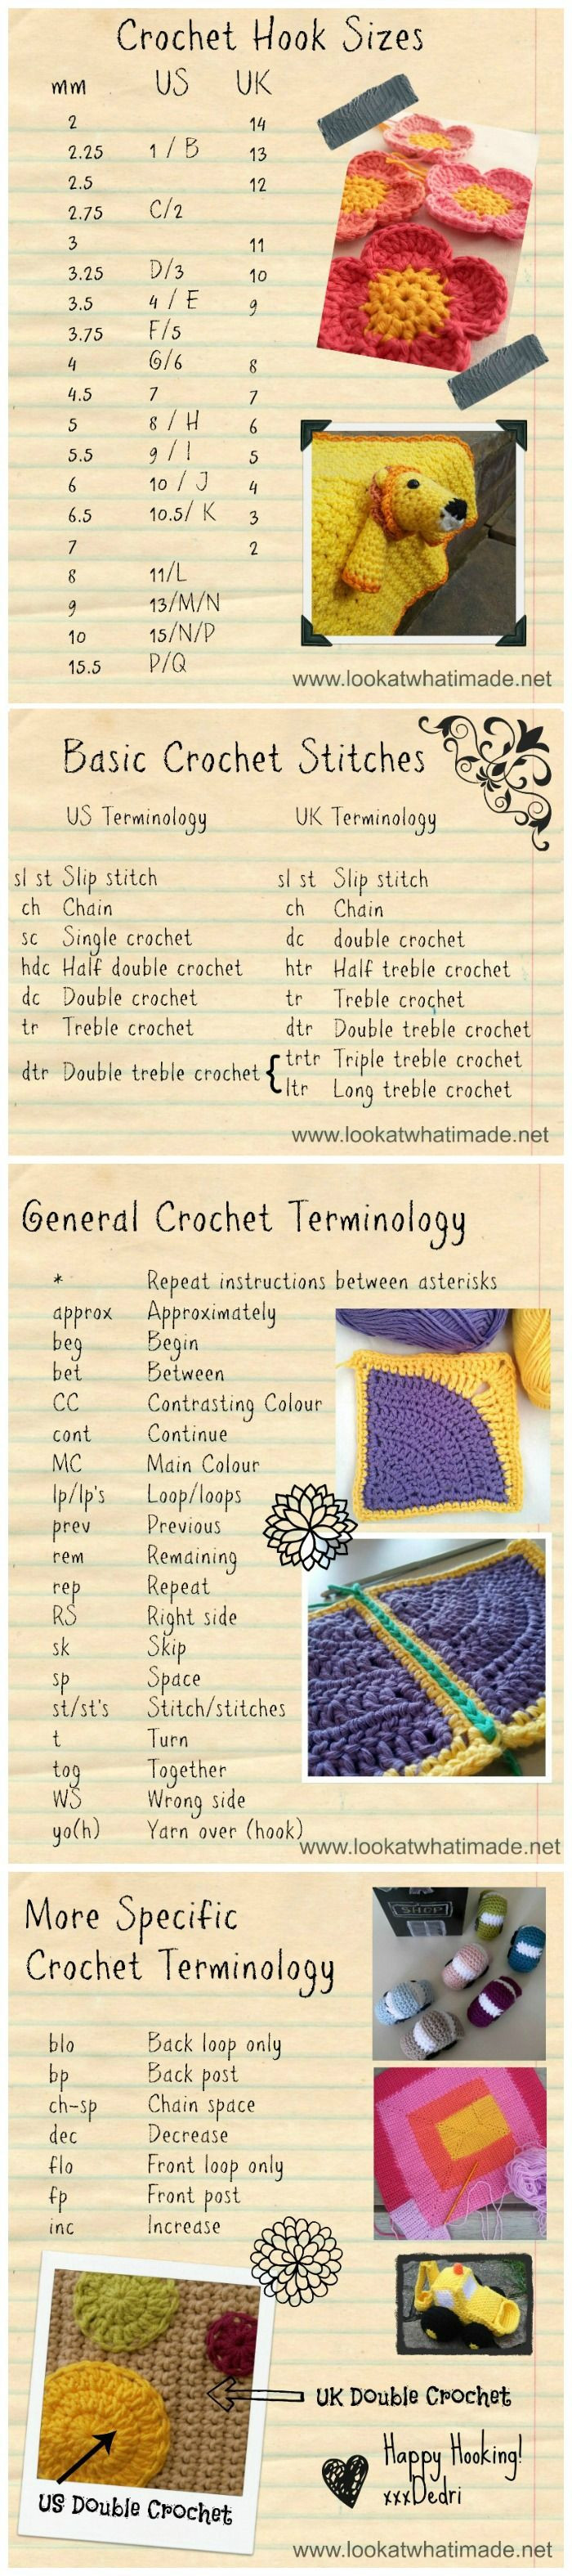 Crochet Size Chart Best Of Crochetterminology Crochet Tips Pinterest Of Incredible 40 Ideas Crochet Size Chart